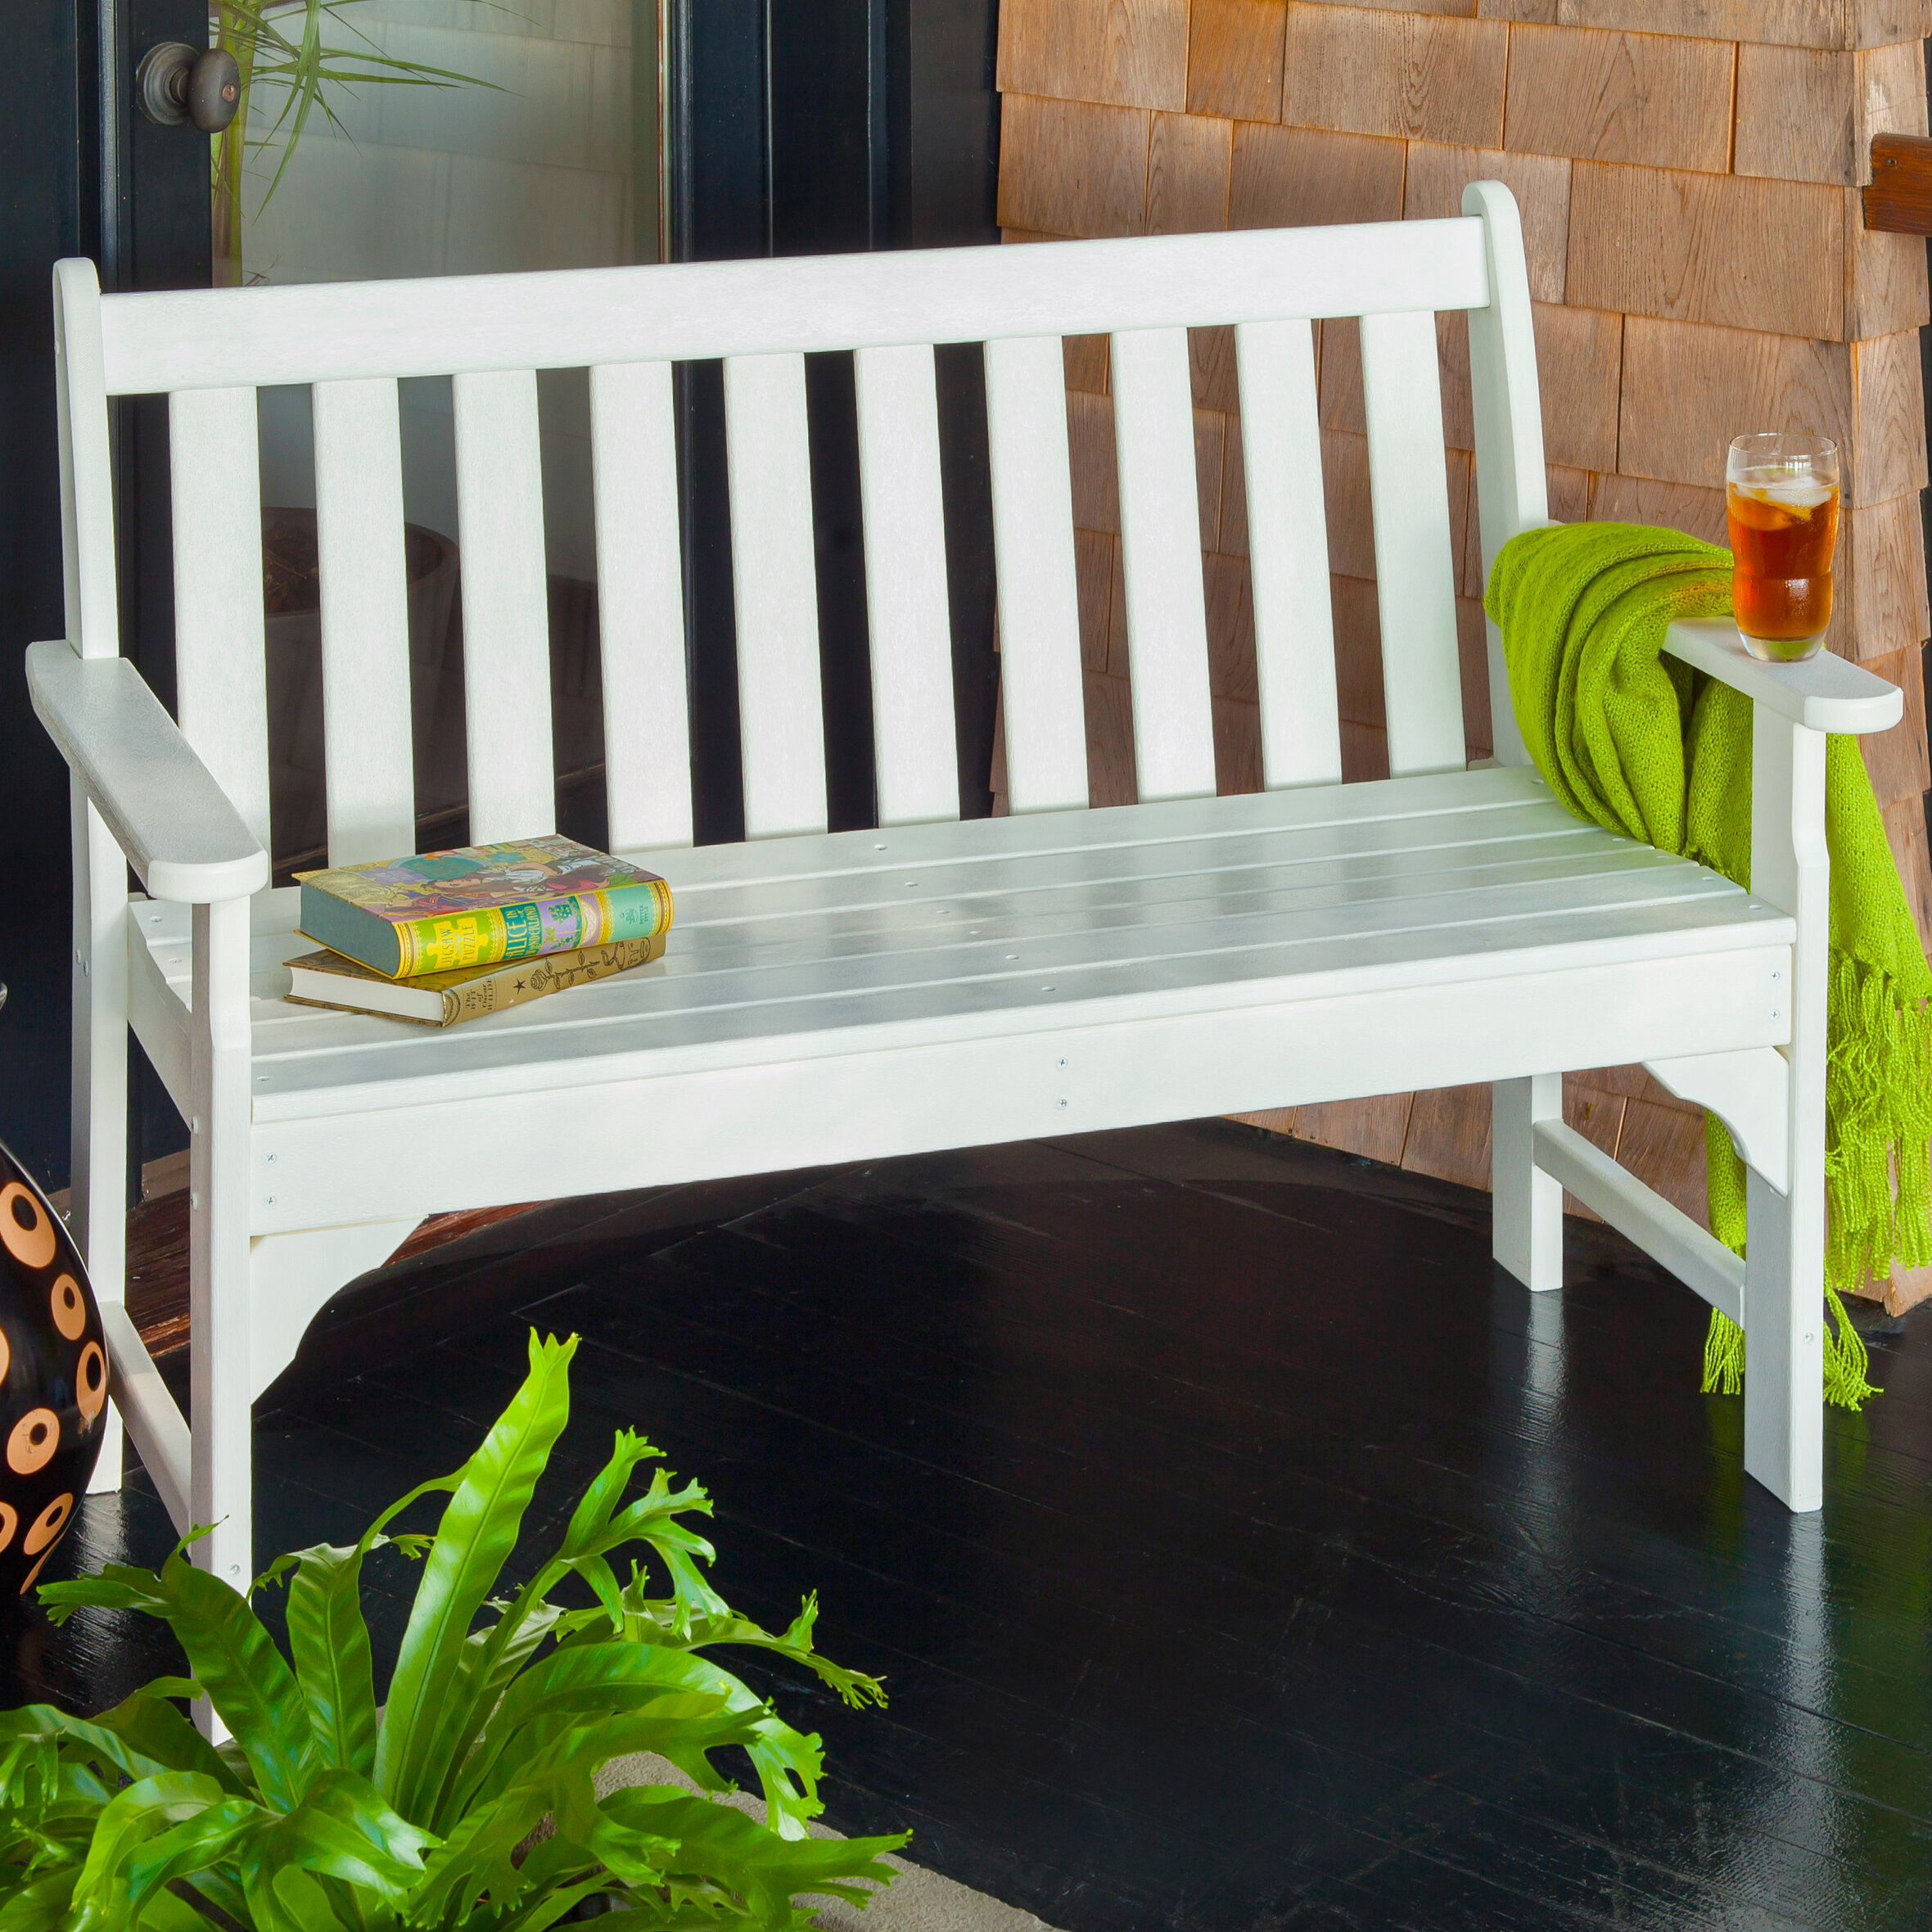 Polywood® Vineyard Plastic Garden Bench Intended For Manchester Solid Wood Garden Benches (View 9 of 25)